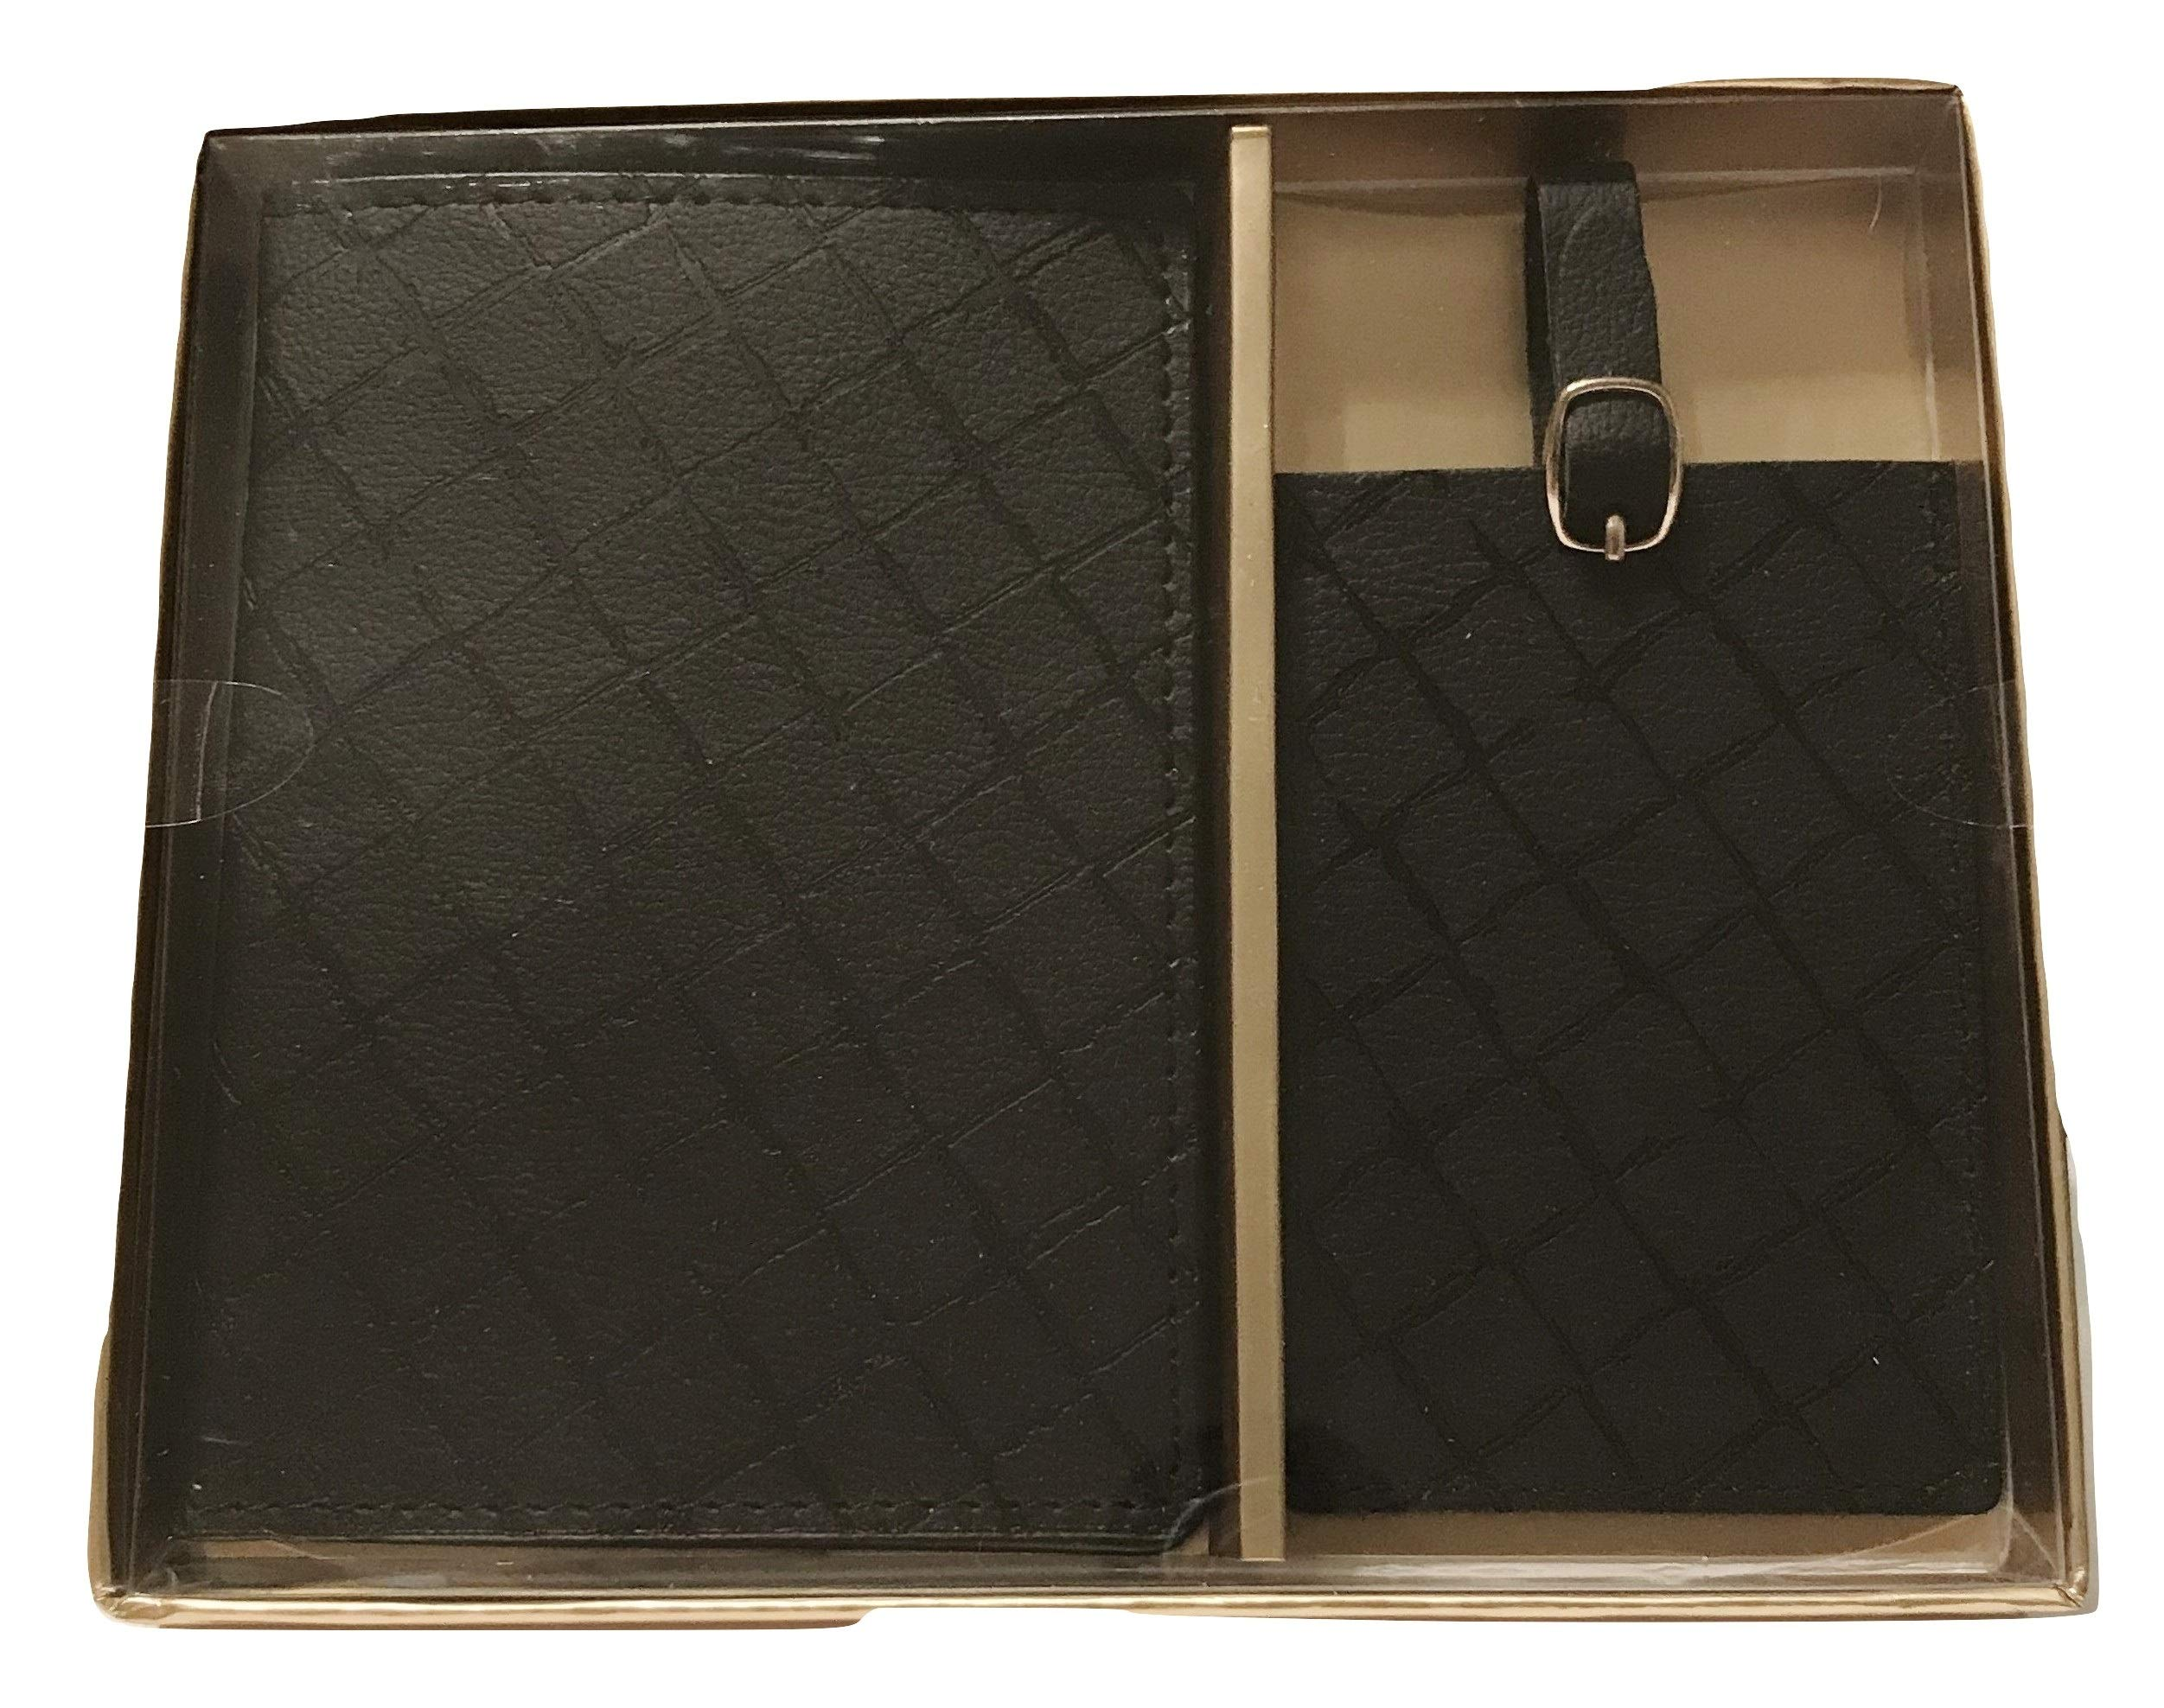 Eccolo Faux Leather Passport Cover and Luggage Tag Set (Black Patterned)